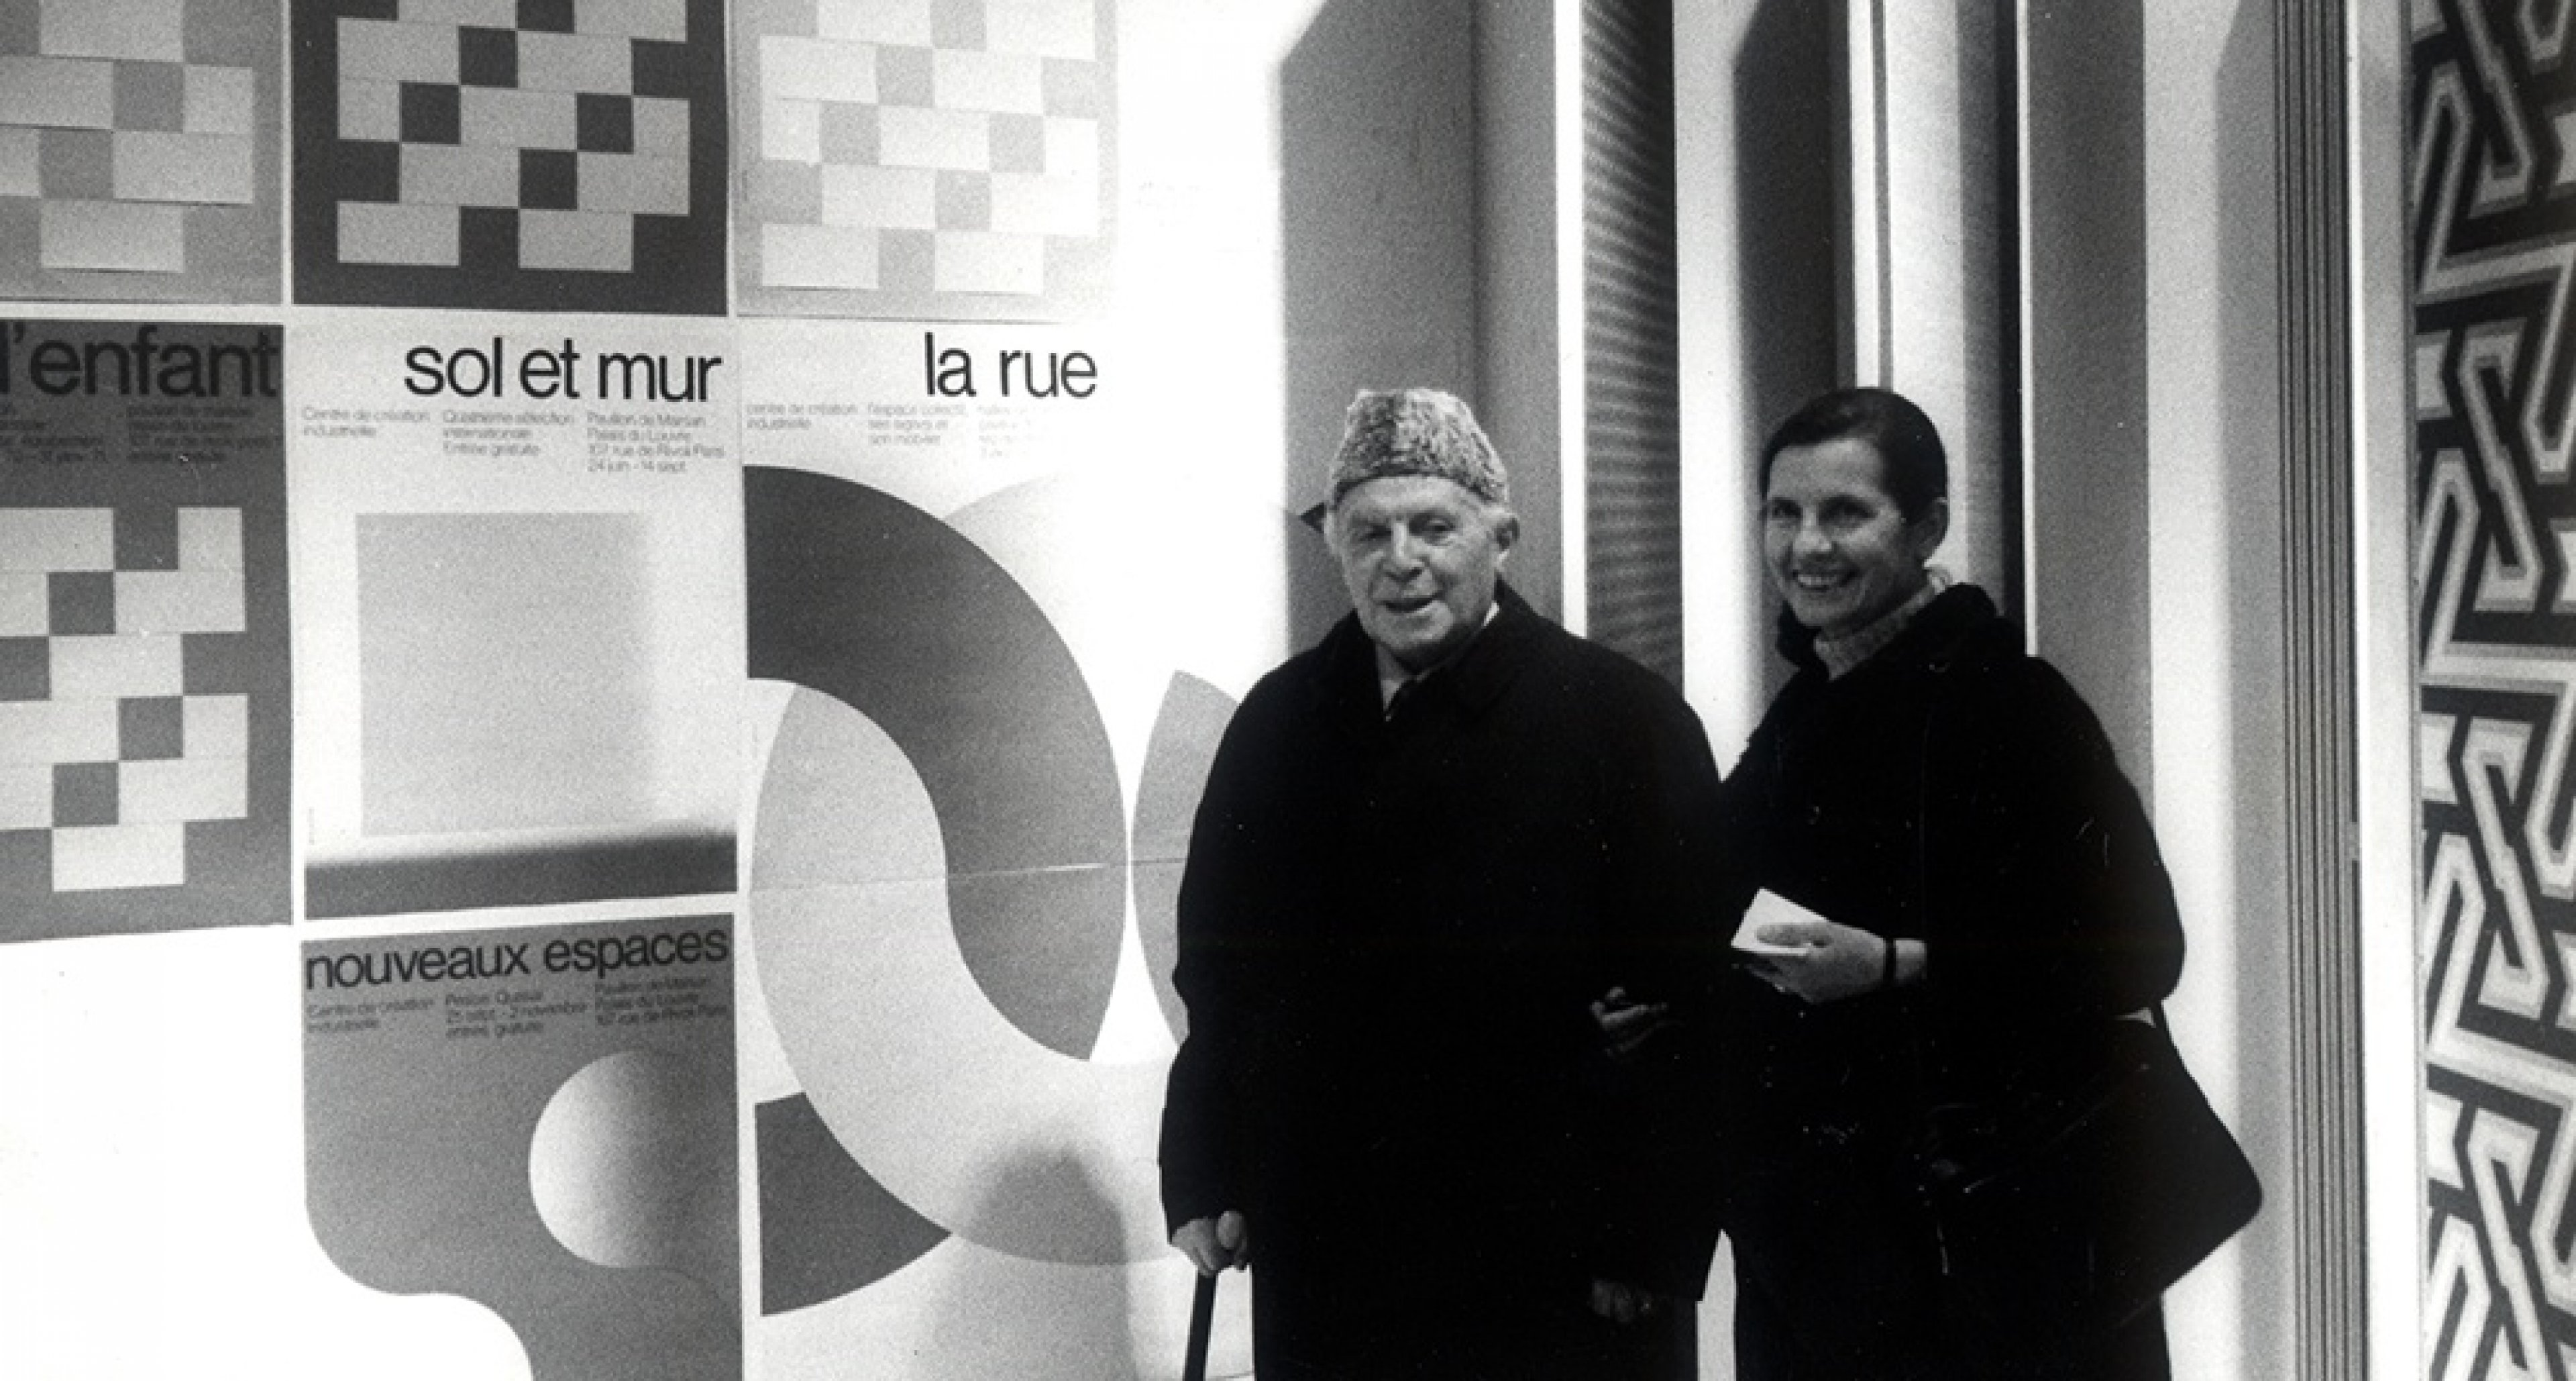 Gio Ponti and his daughter Lisa at the Musée des Arts Décoratifs in Paris, 1973 Gio Ponti archives © Gio Ponti Archives, Milan